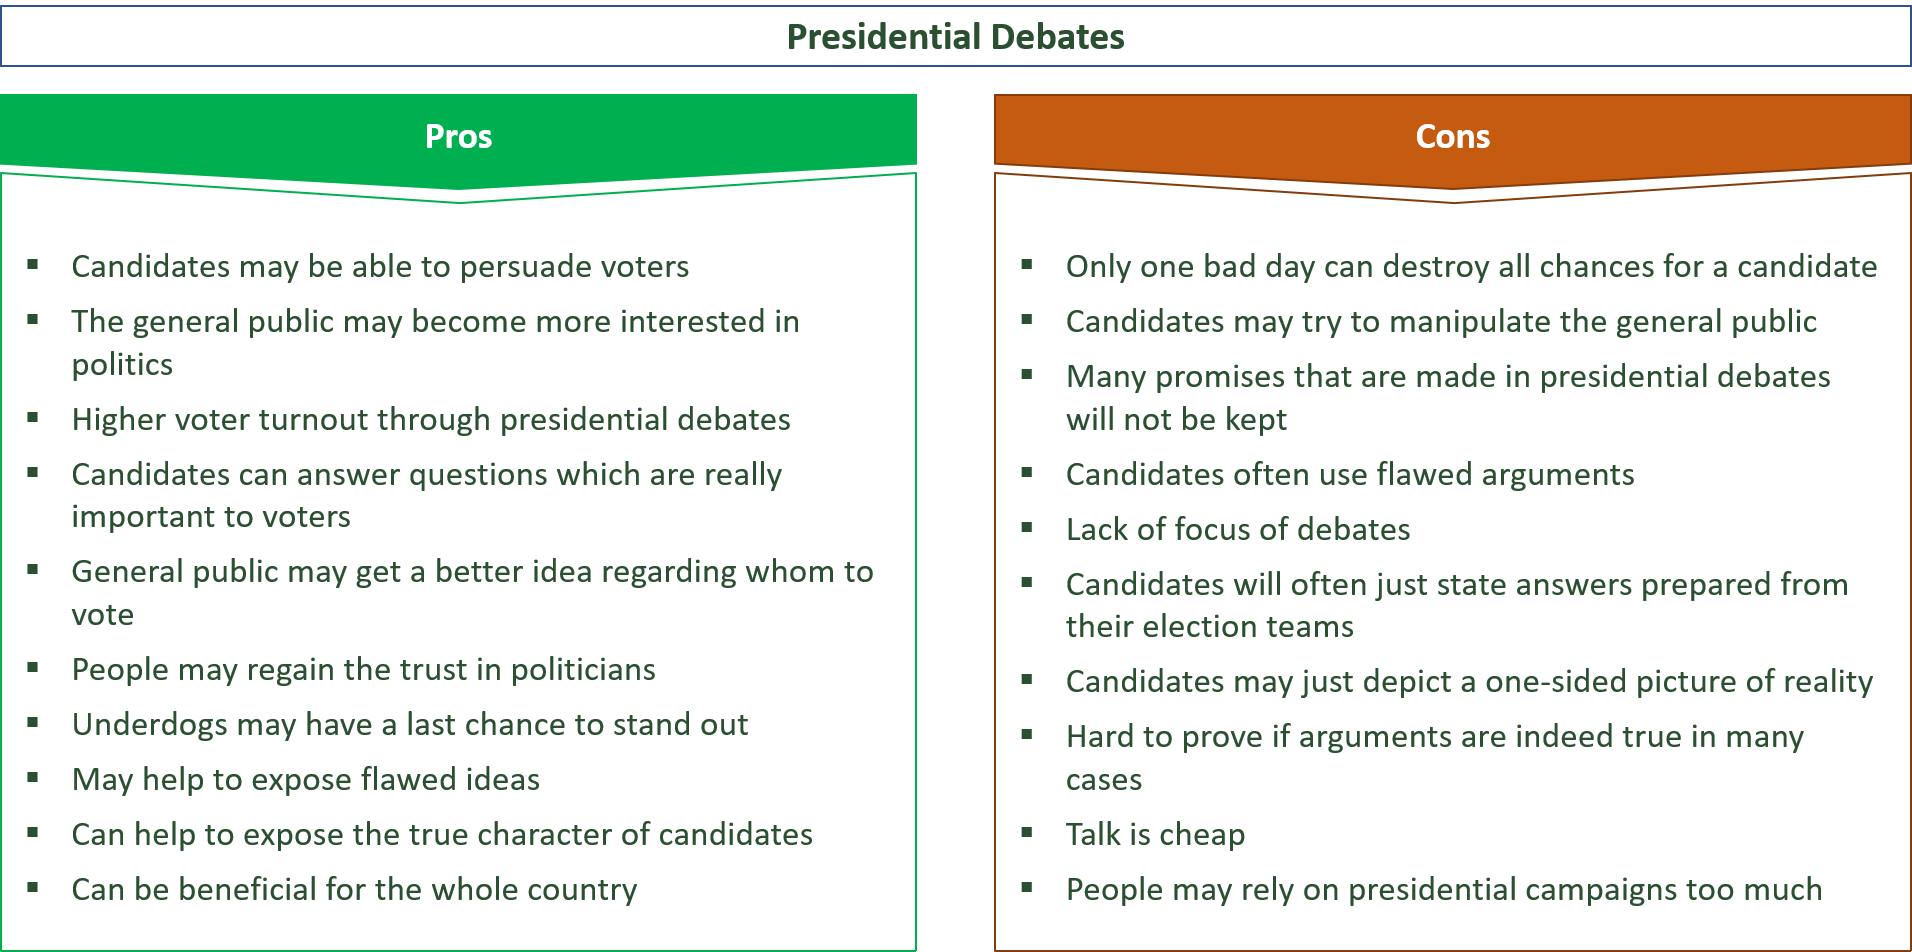 advantages and disadvantages of presidential debates